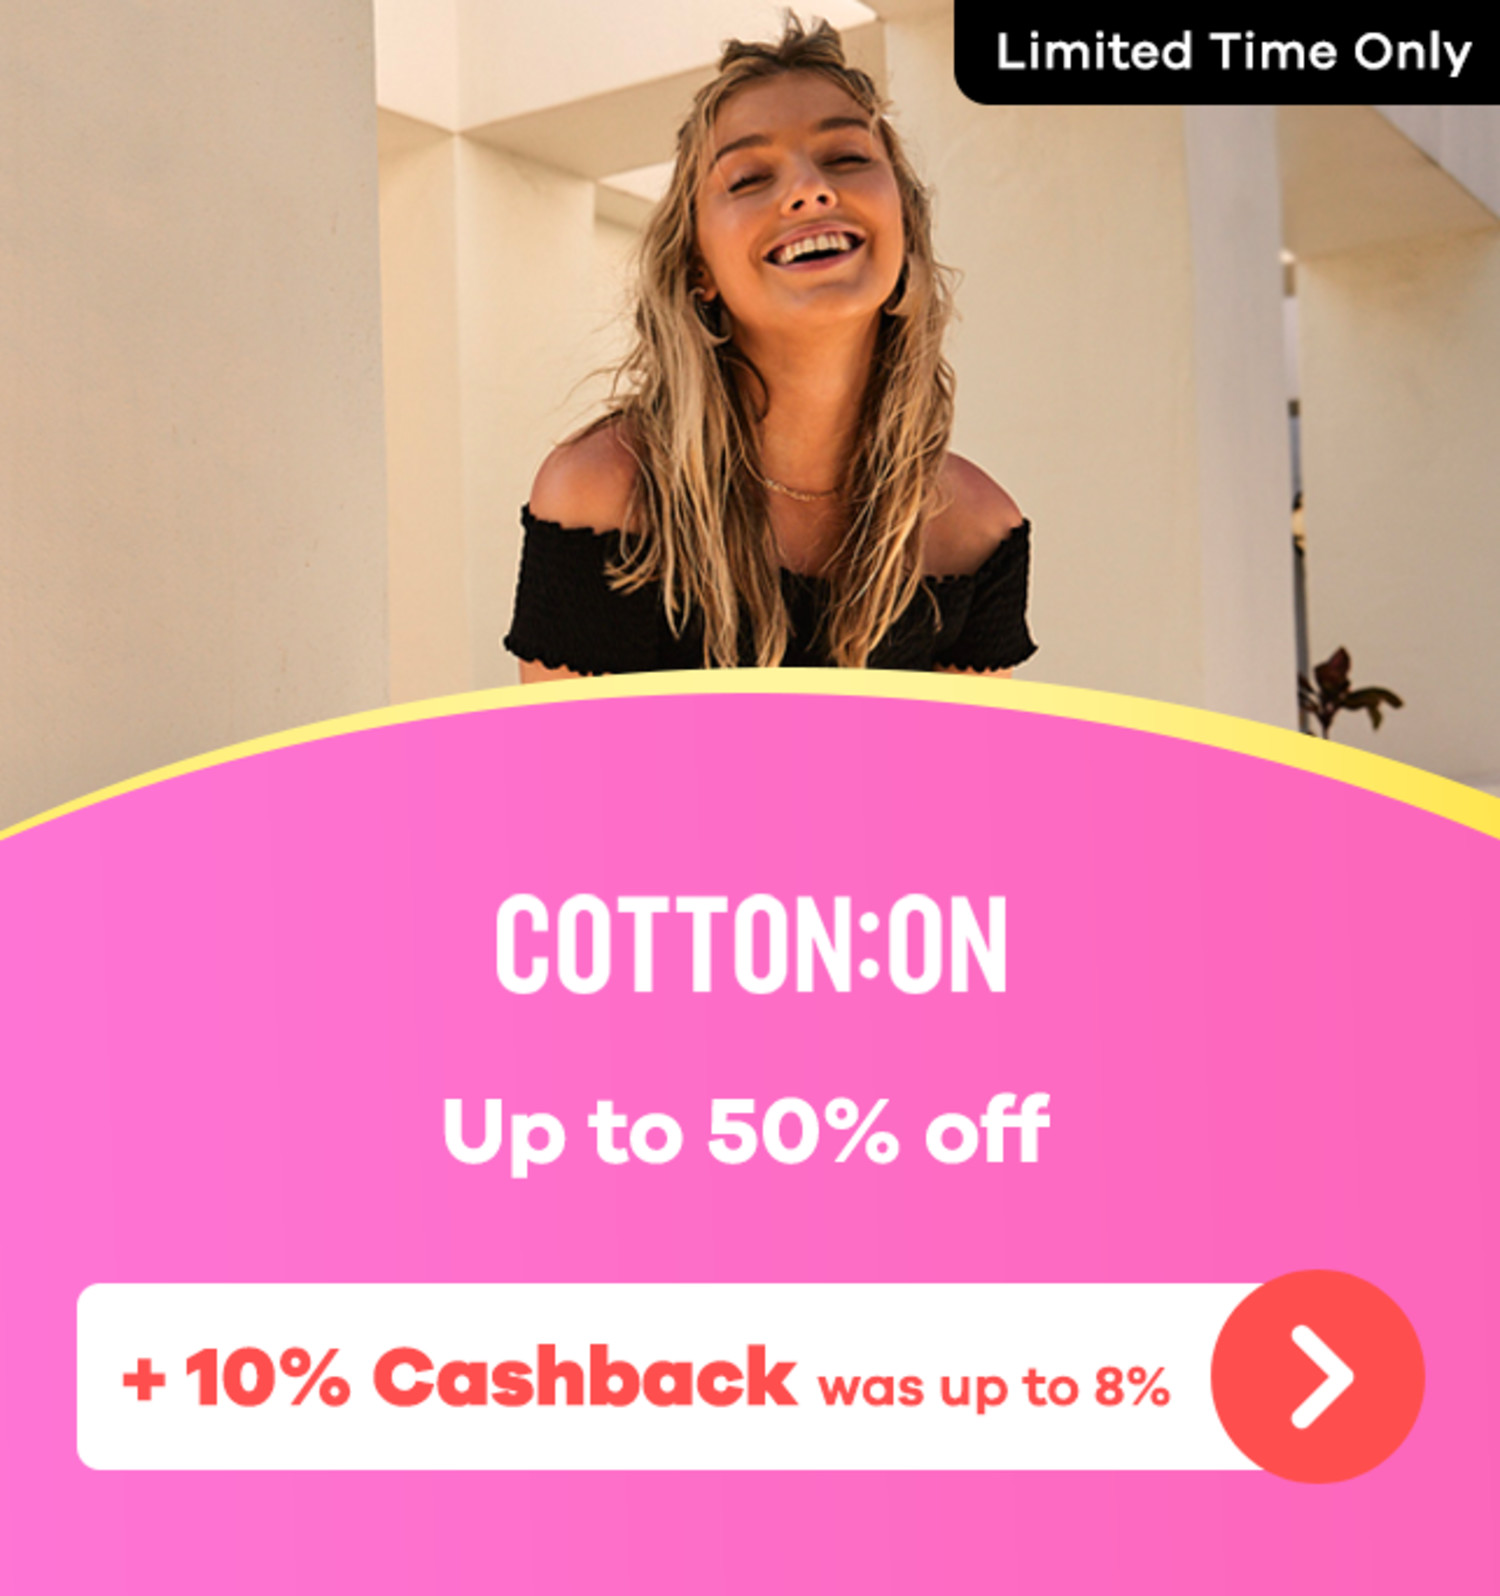 Cotton On - Up to 50% off